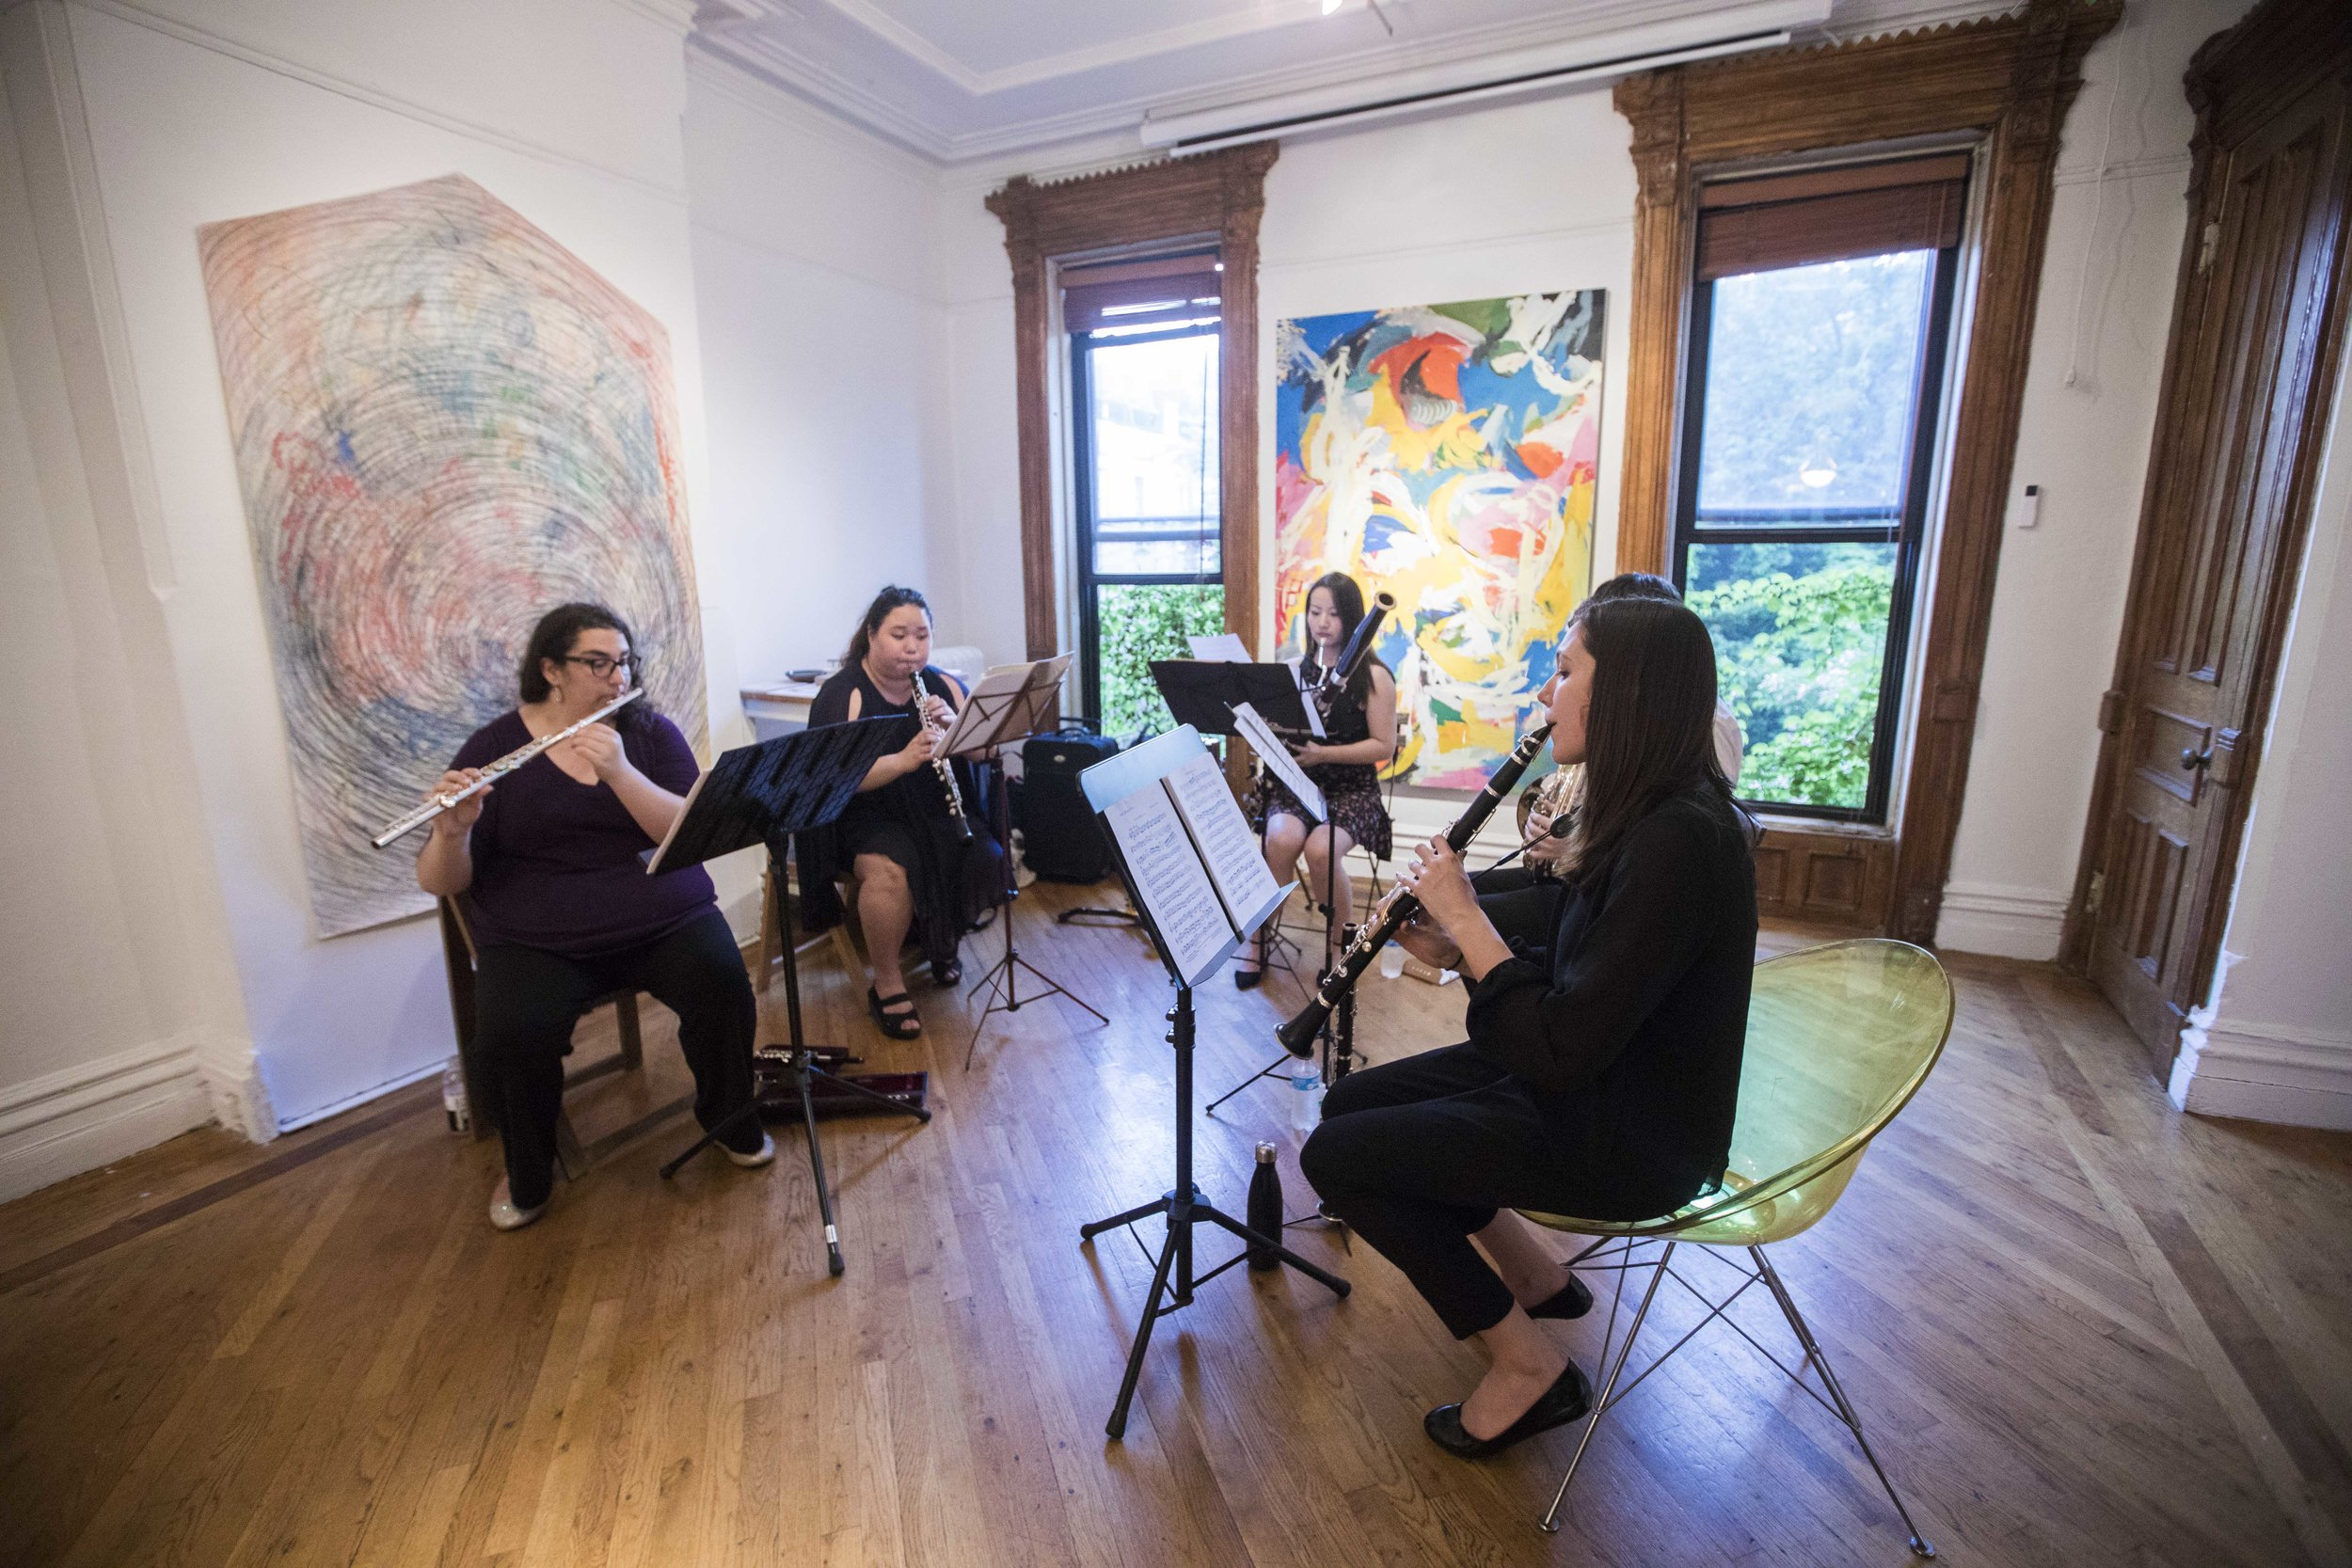 Nevermore - Music Concert  with The Lumisade Quintet at Fou Gallery. Photograph by Nadia Peichao Lin. 昨夜星辰昨夜风 - 木管五重奏音乐会@否画廊,摄影:林沛超.